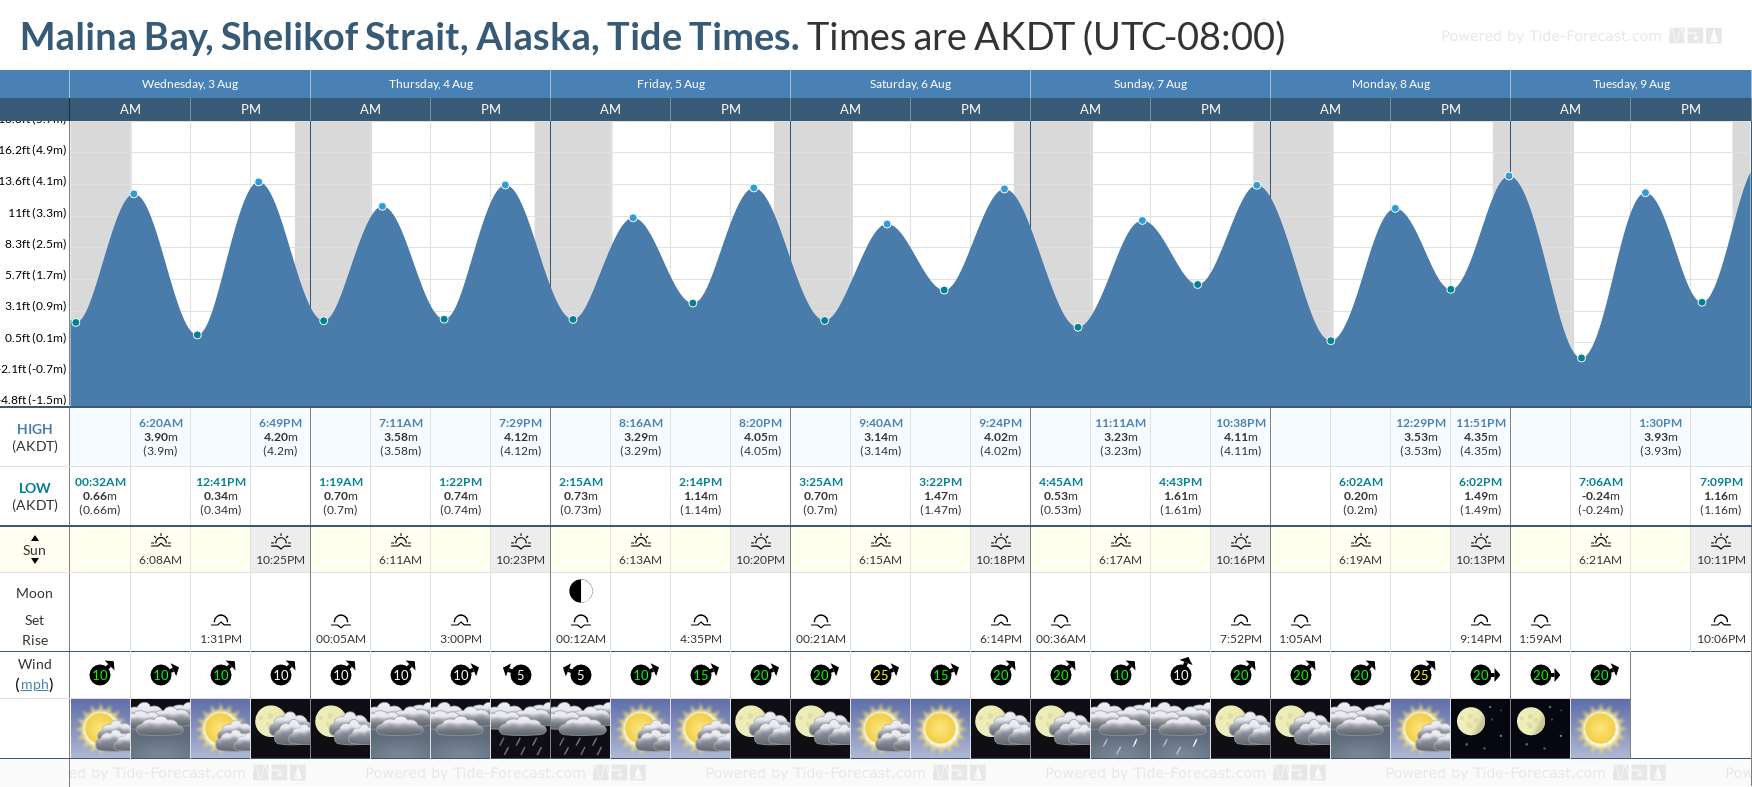 Malina Bay, Shelikof Strait, Alaska Tide Chart including high and low tide tide times for the next 7 days